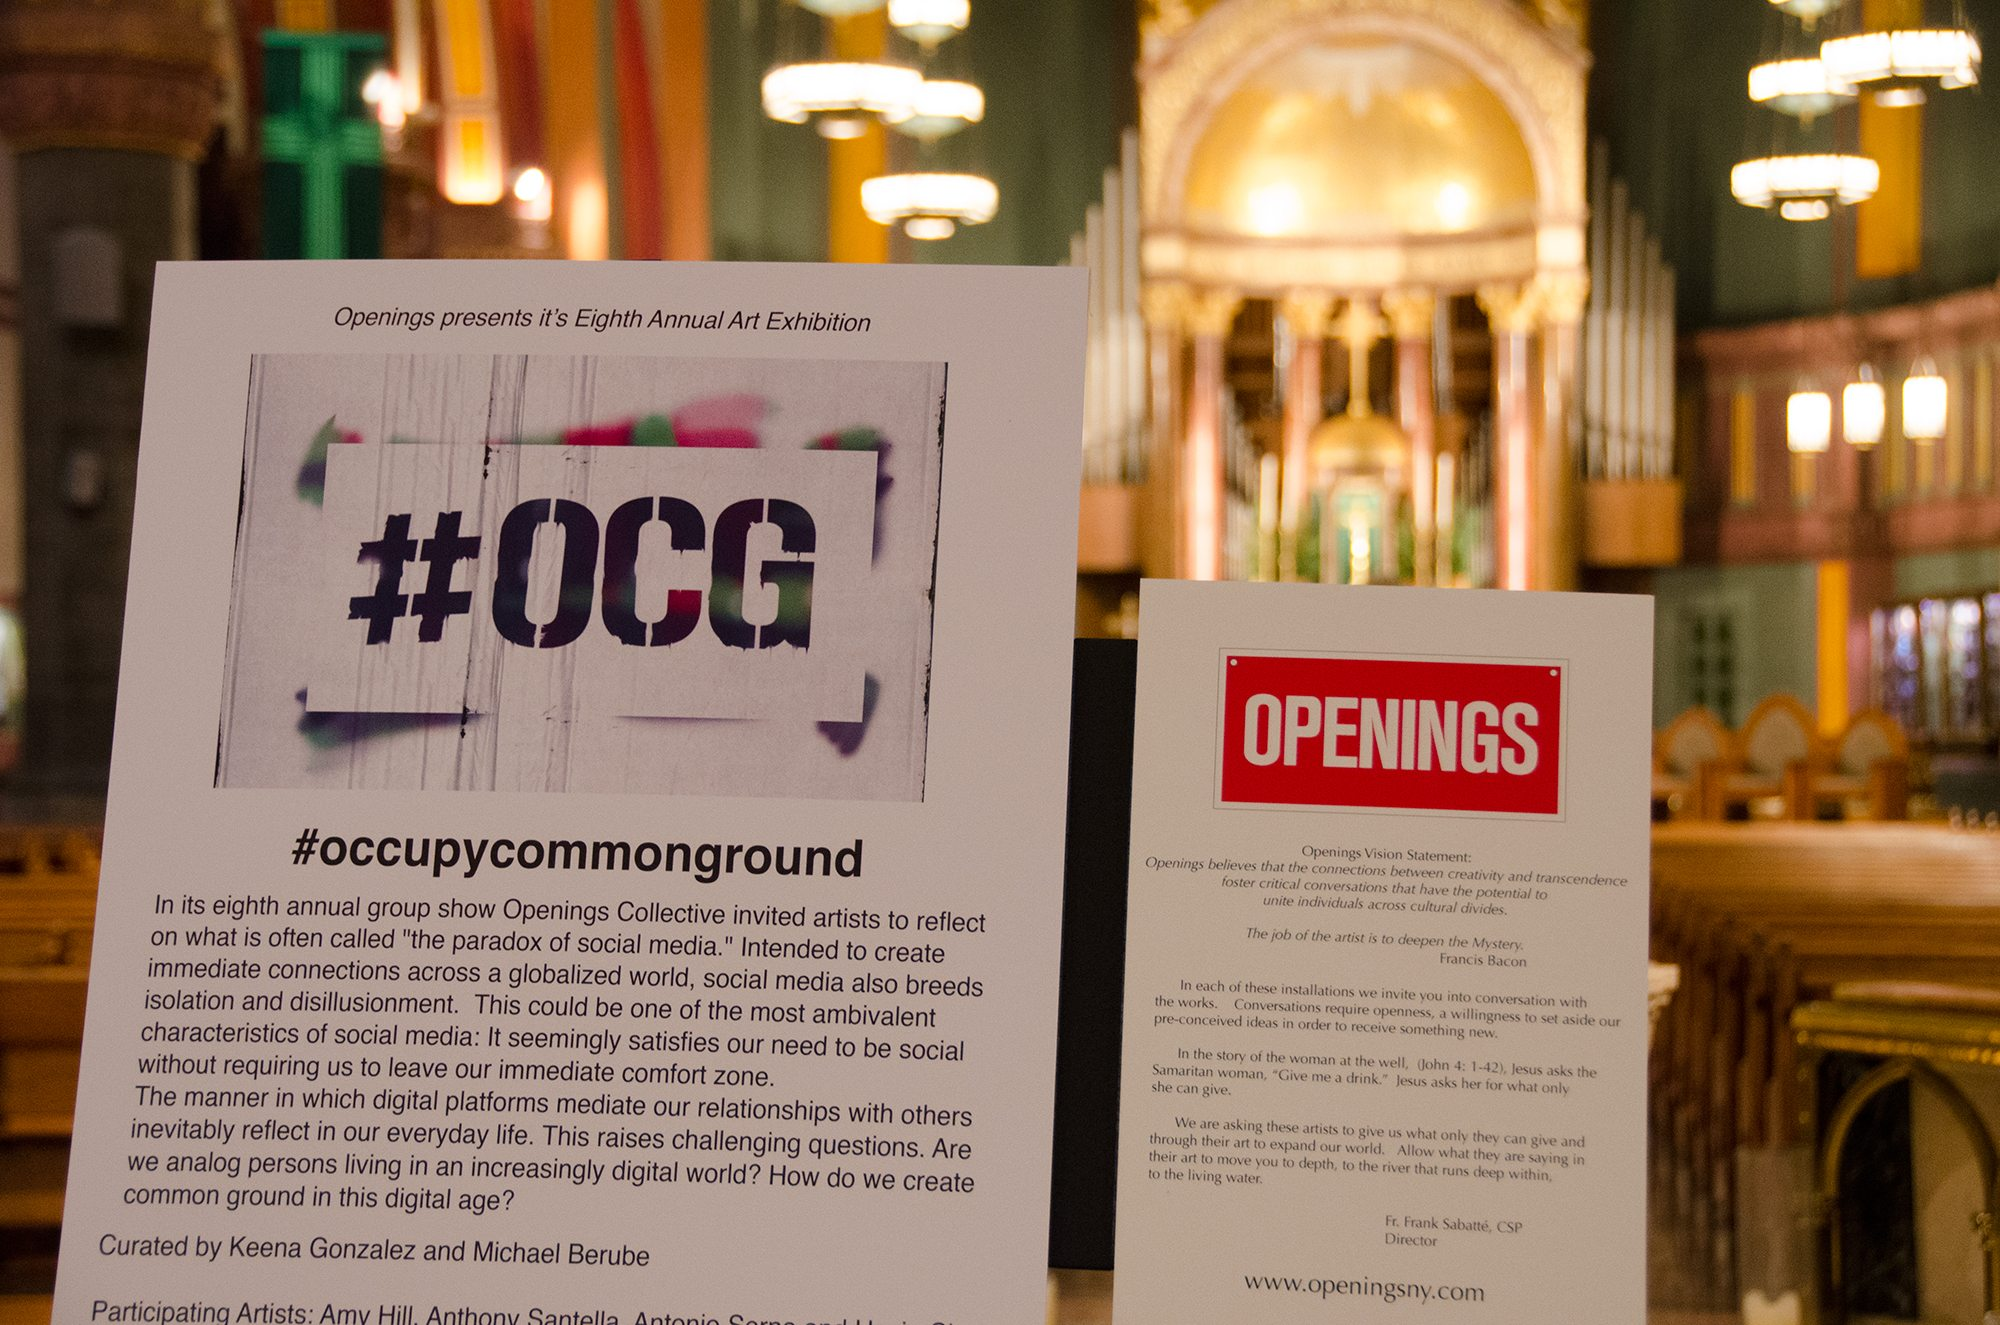 #OCG Exhibition Opening Reception